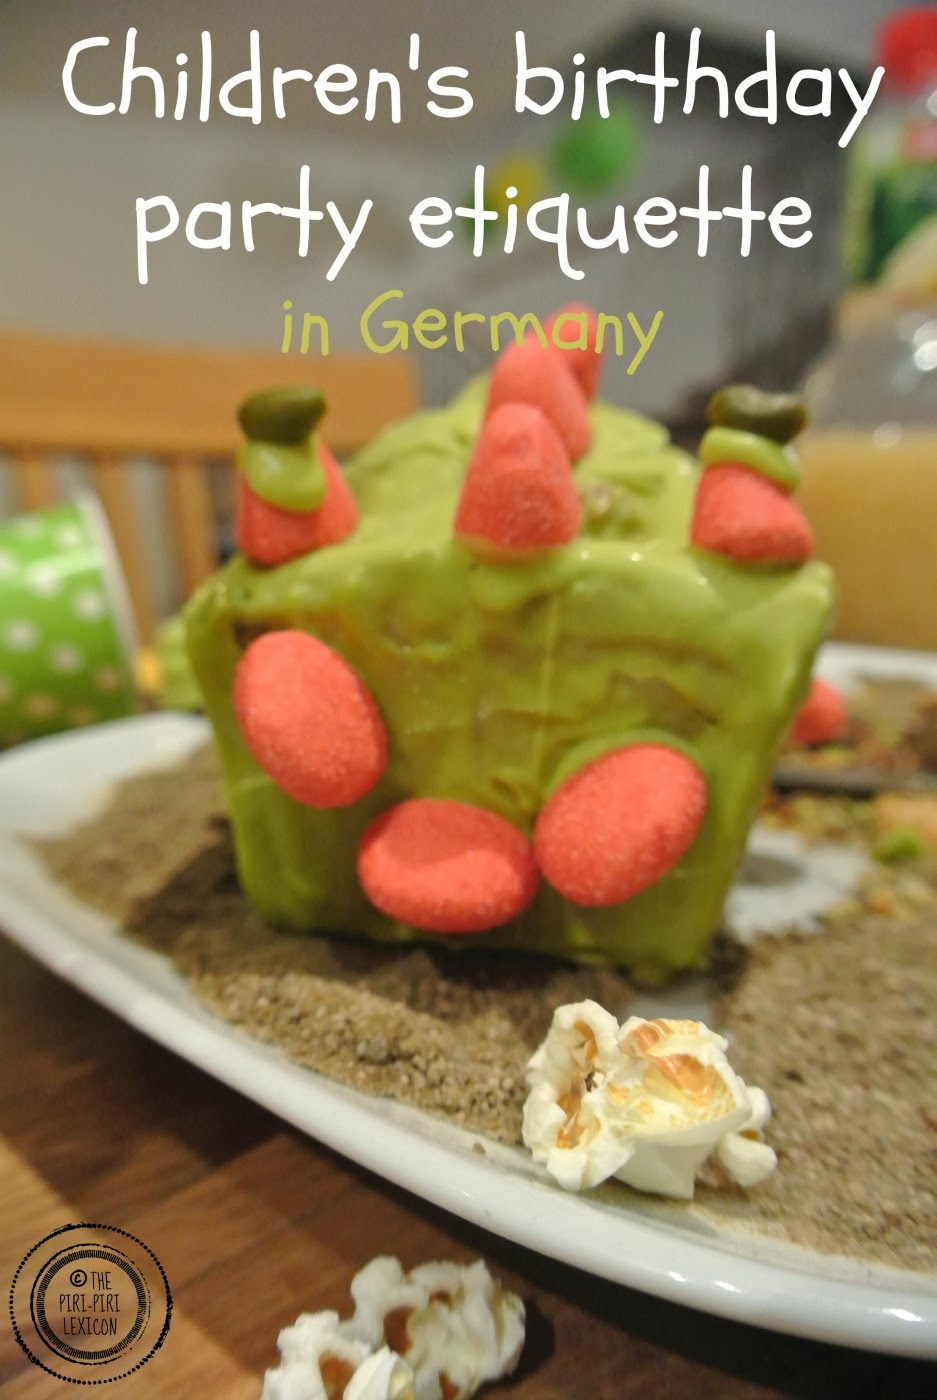 Childrens Birthday Party Etiquette In Germany The Piripiri Lexicon - Children's birthday etiquette